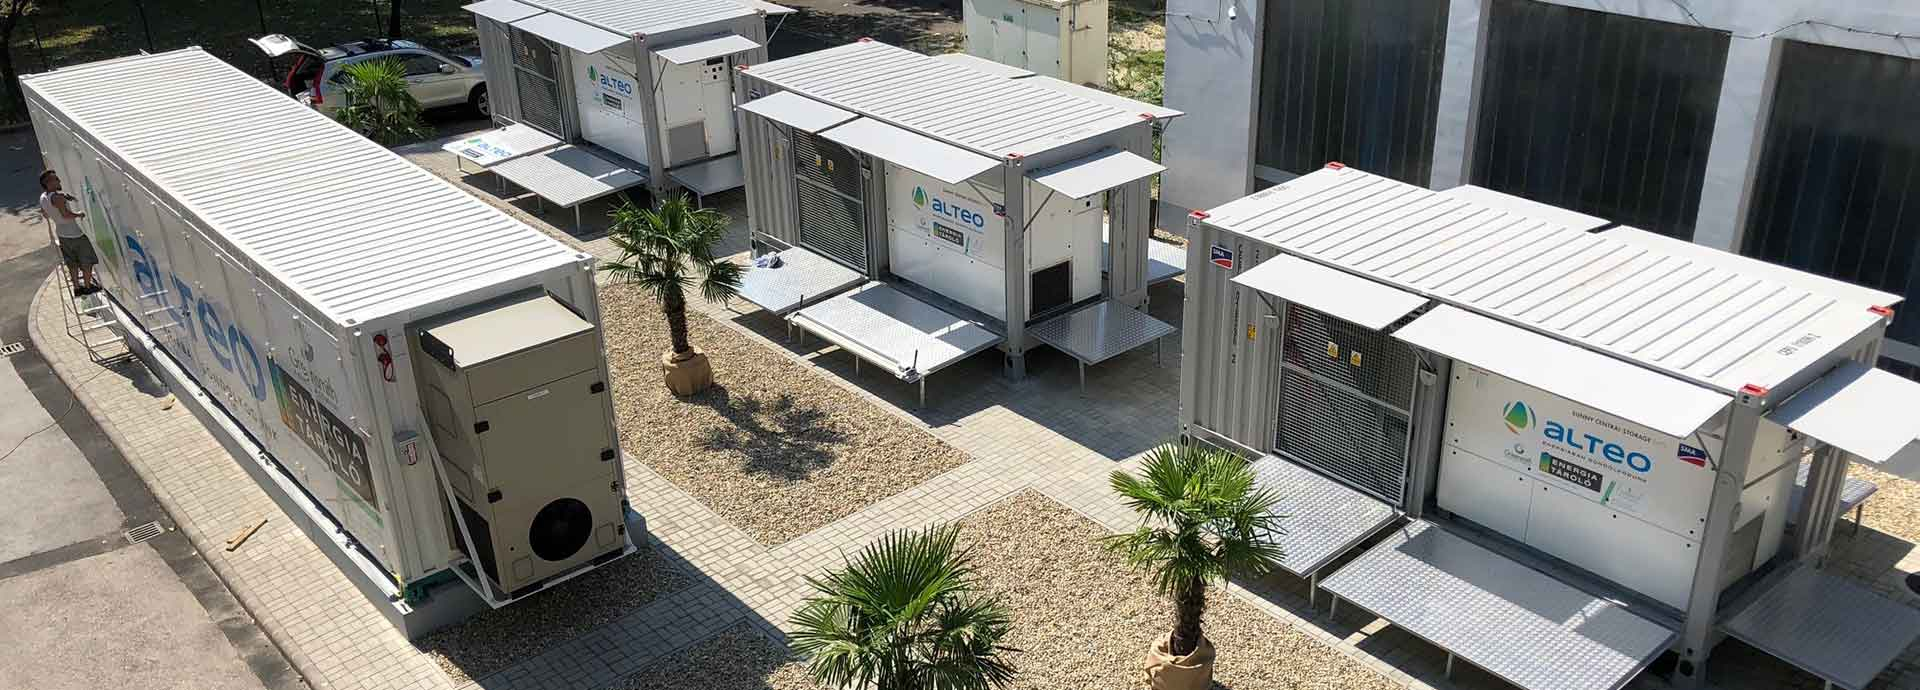 Sound energy storage key to enter new energy markets in Hungary